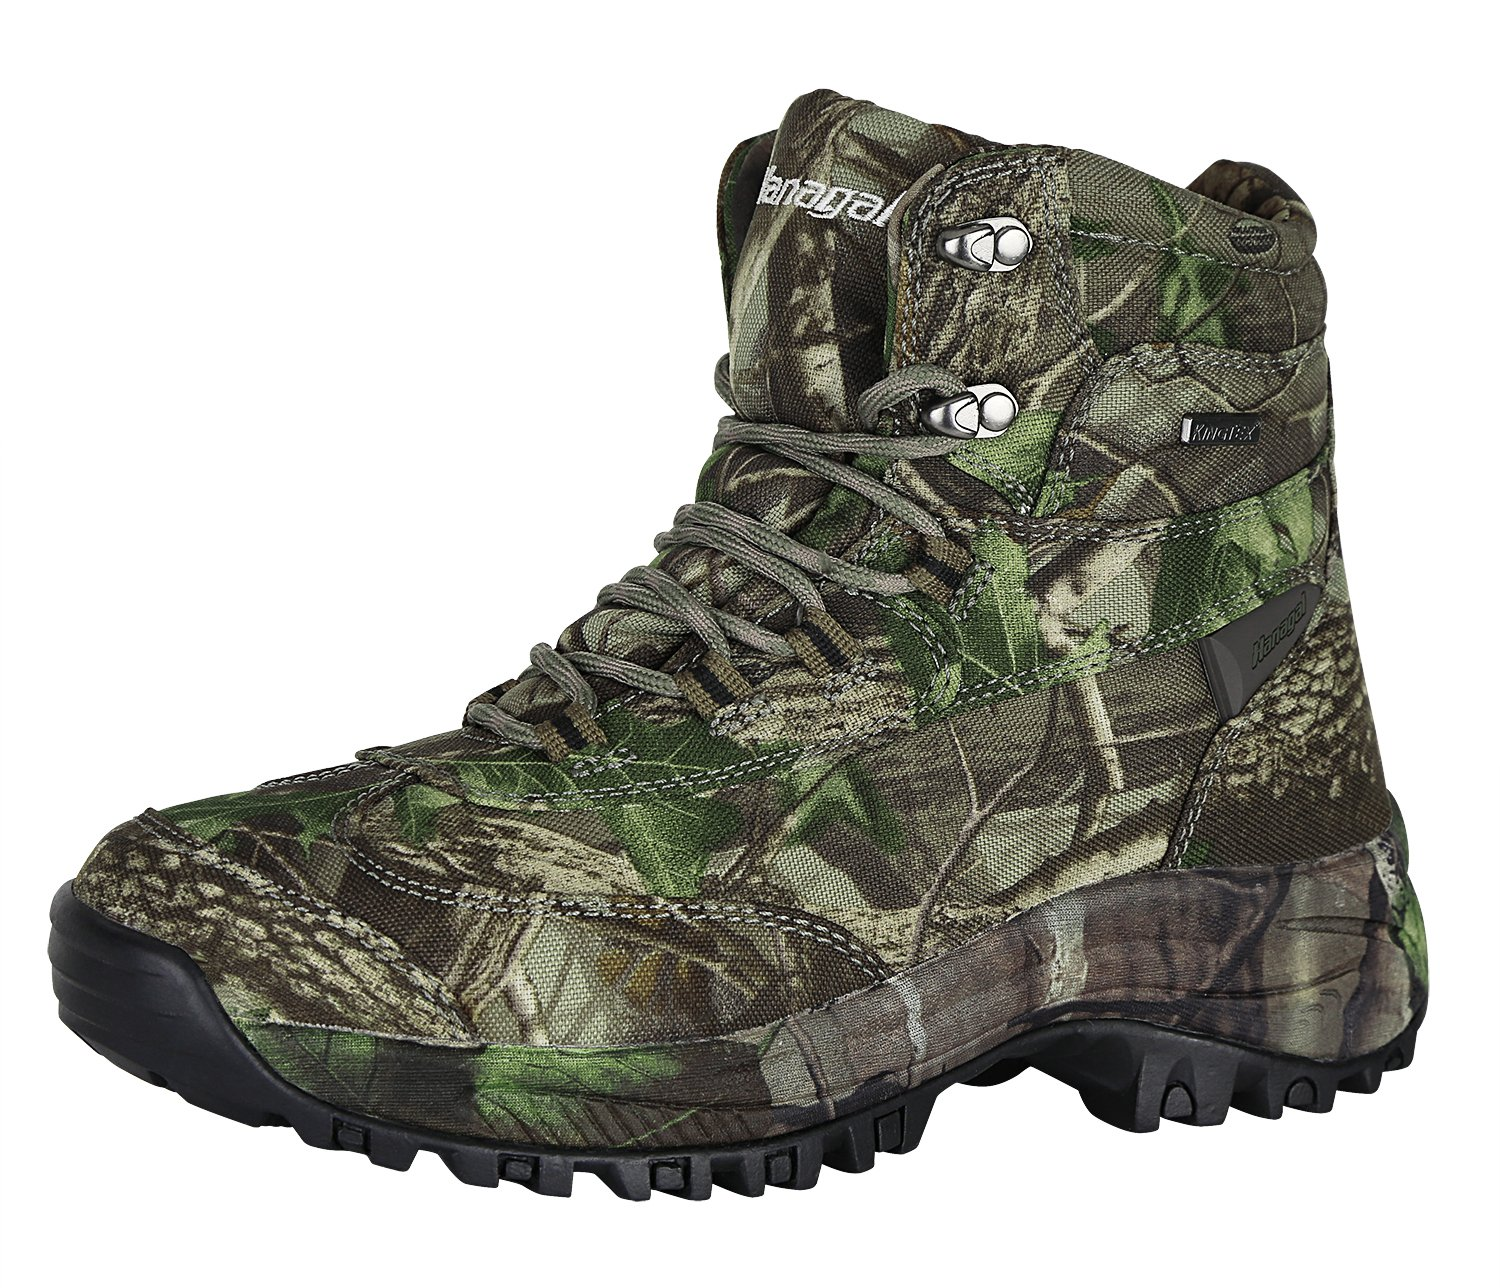 Hanagal Men's Touraine Hiking Shoe,Camouflage, Size 11.5